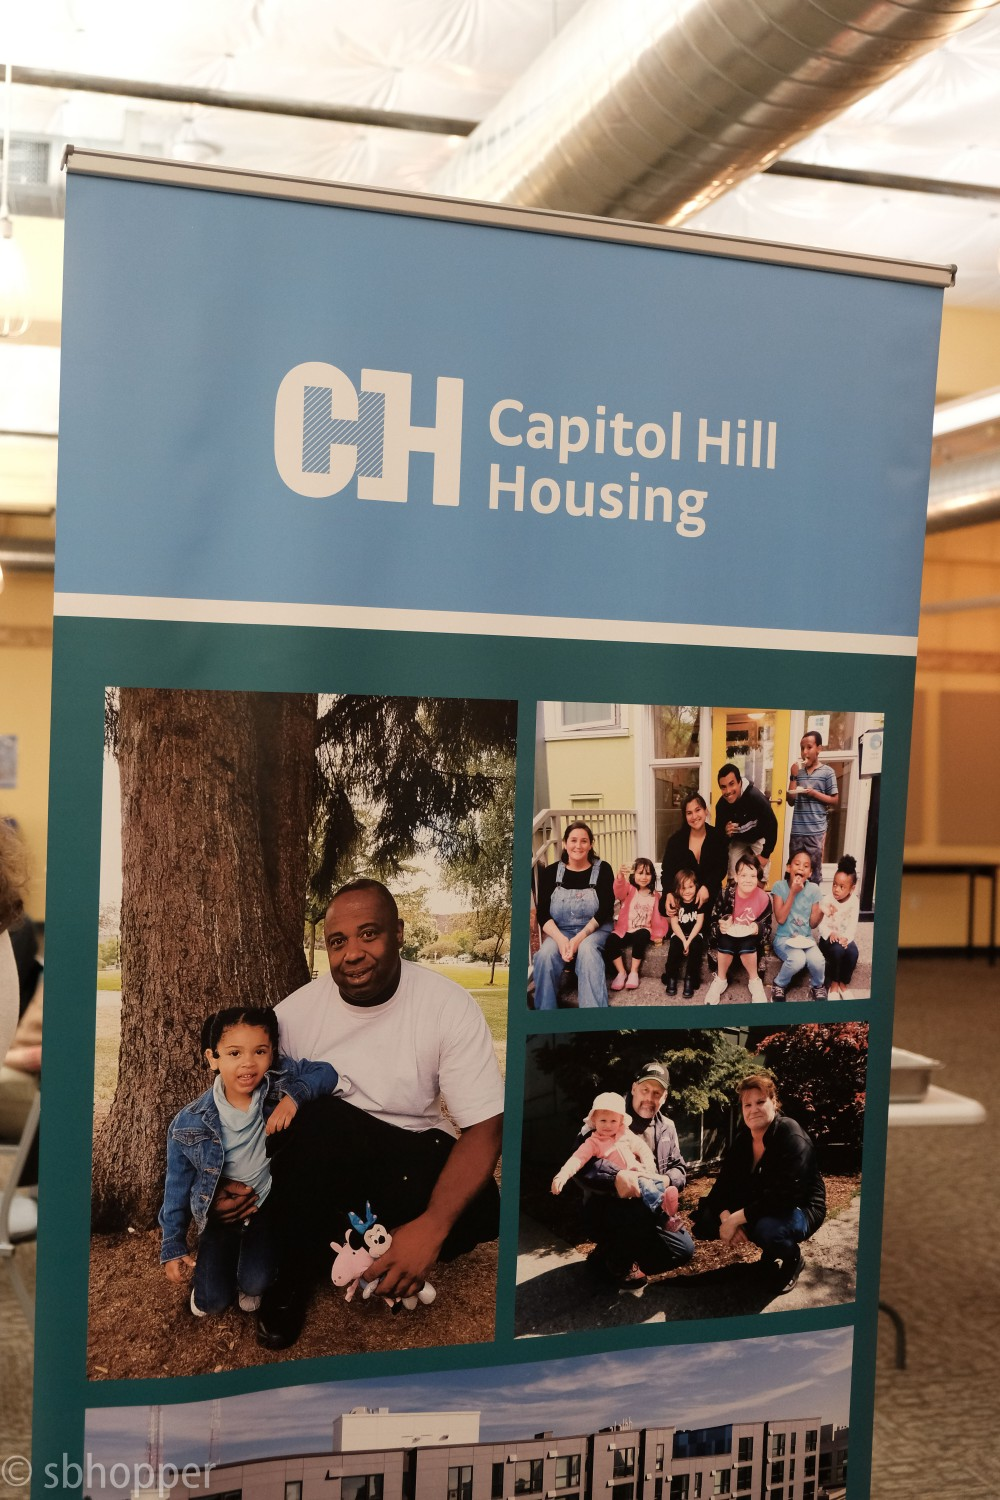 Capitol Hill Housing event 19 December 2017 (4 of 12)